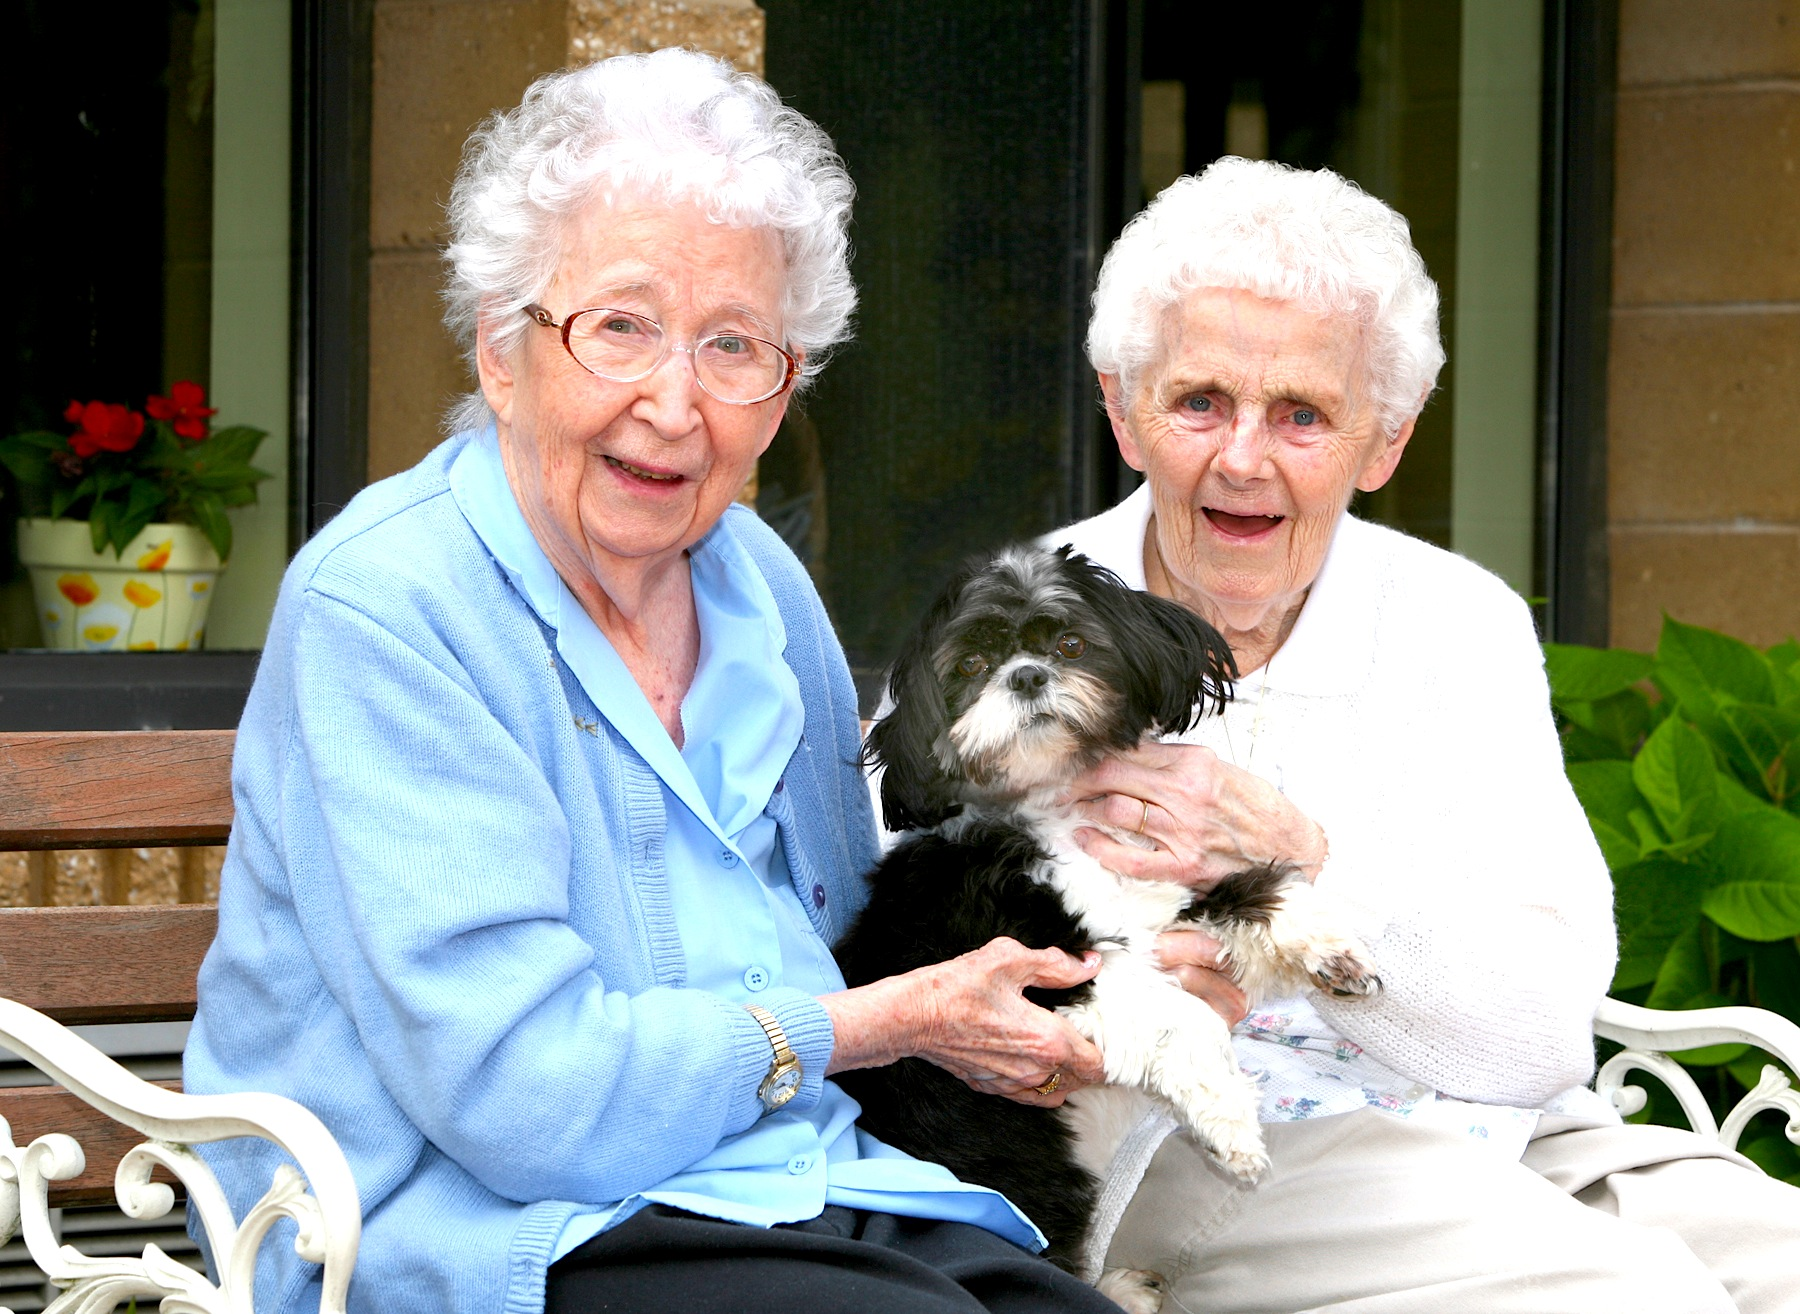 nursing home residents Nursing home residents just got new safeguards to their rights – rights they aren't suppose to lose when entering a facility.